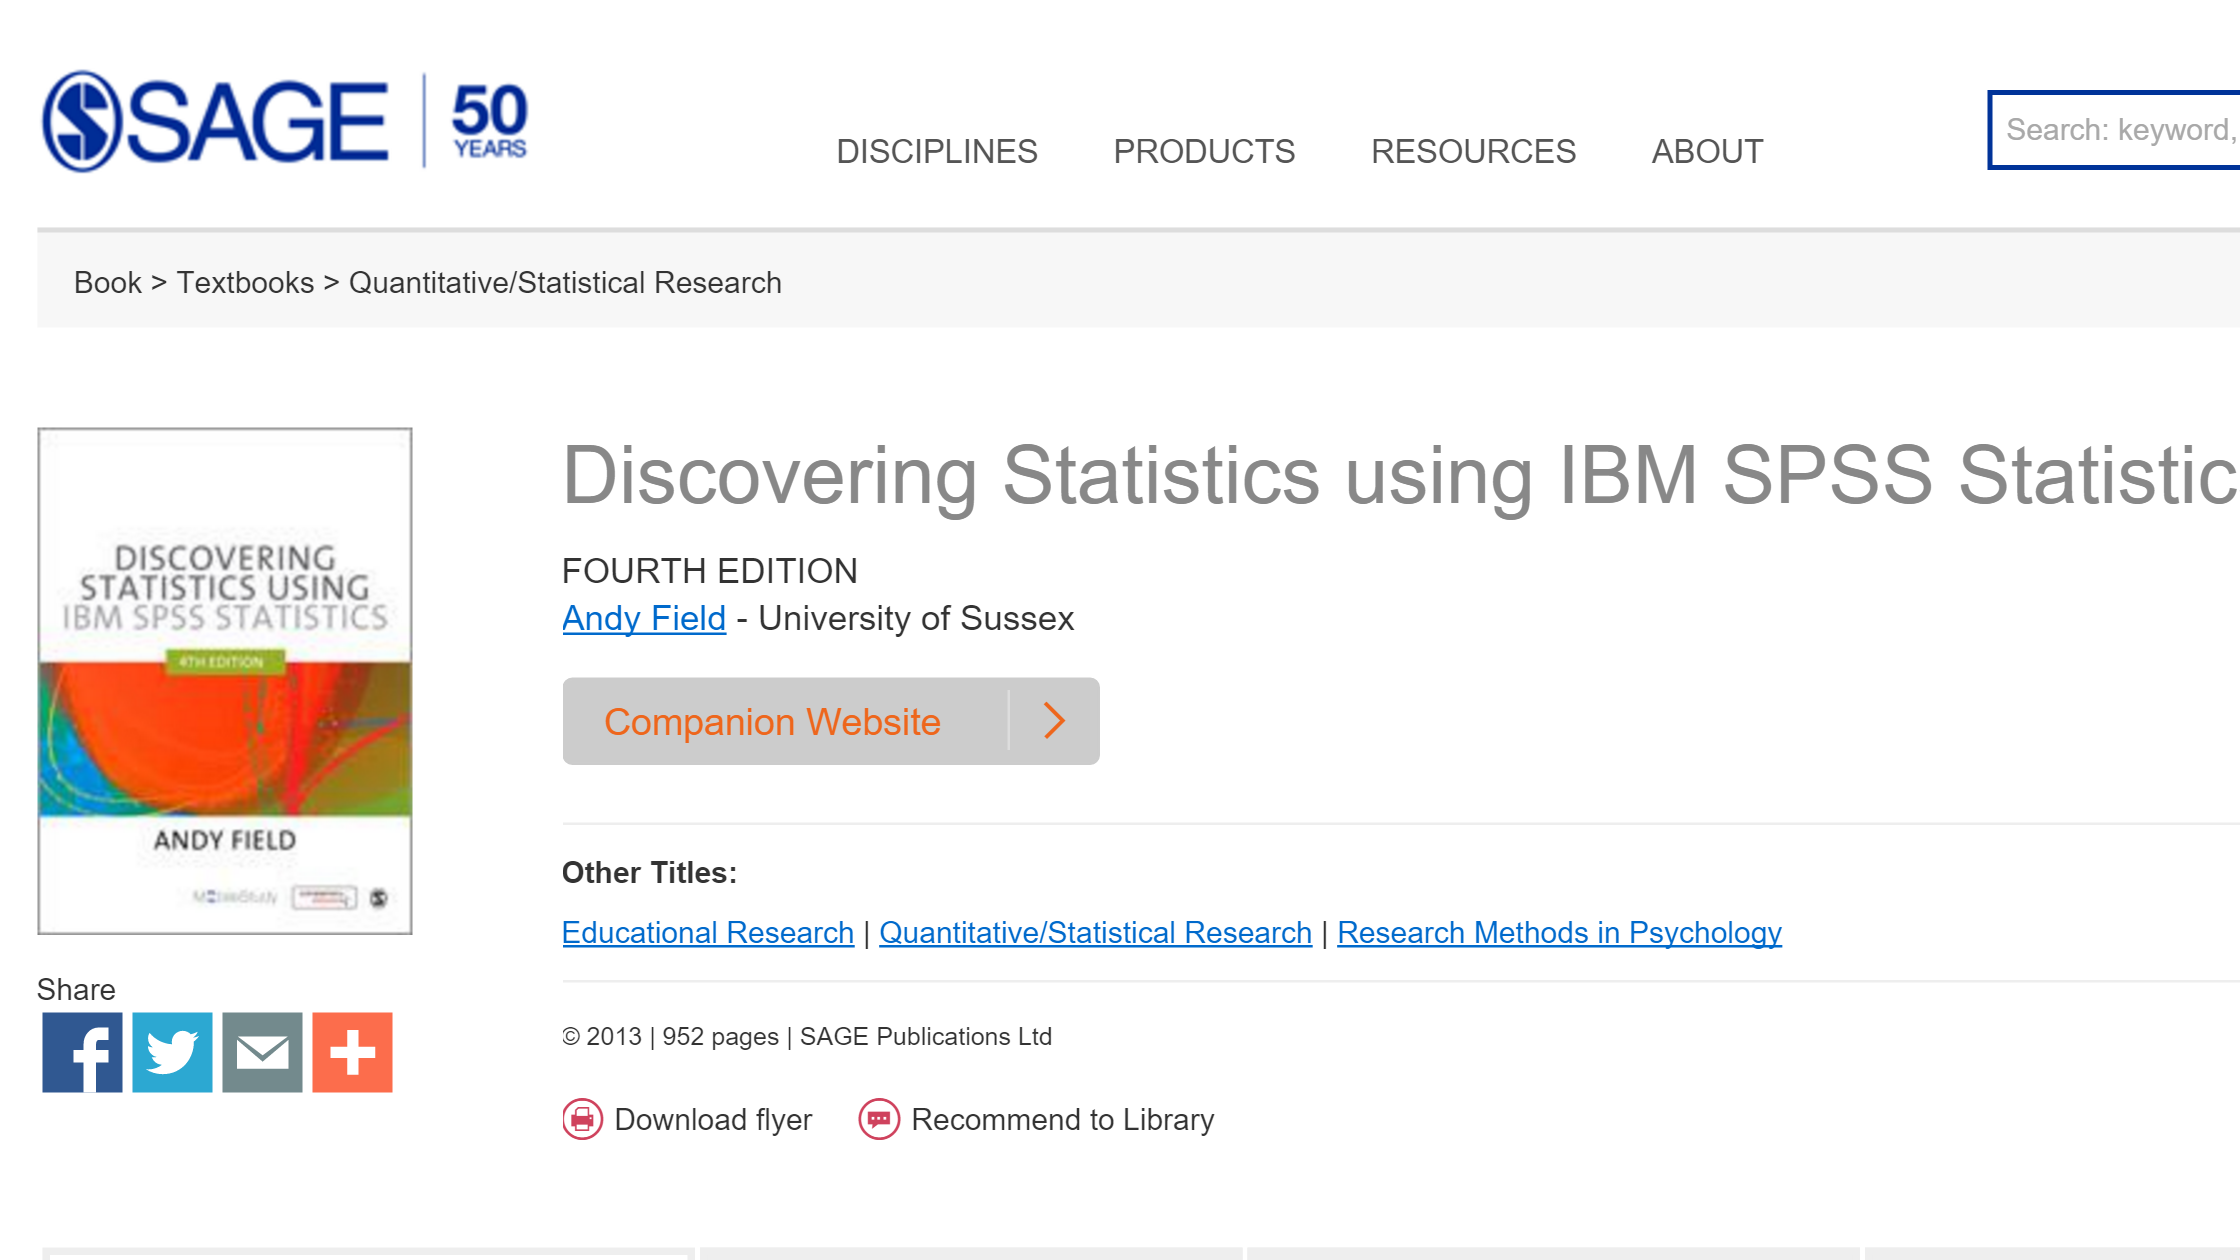 Discovering Statistics Companion Website